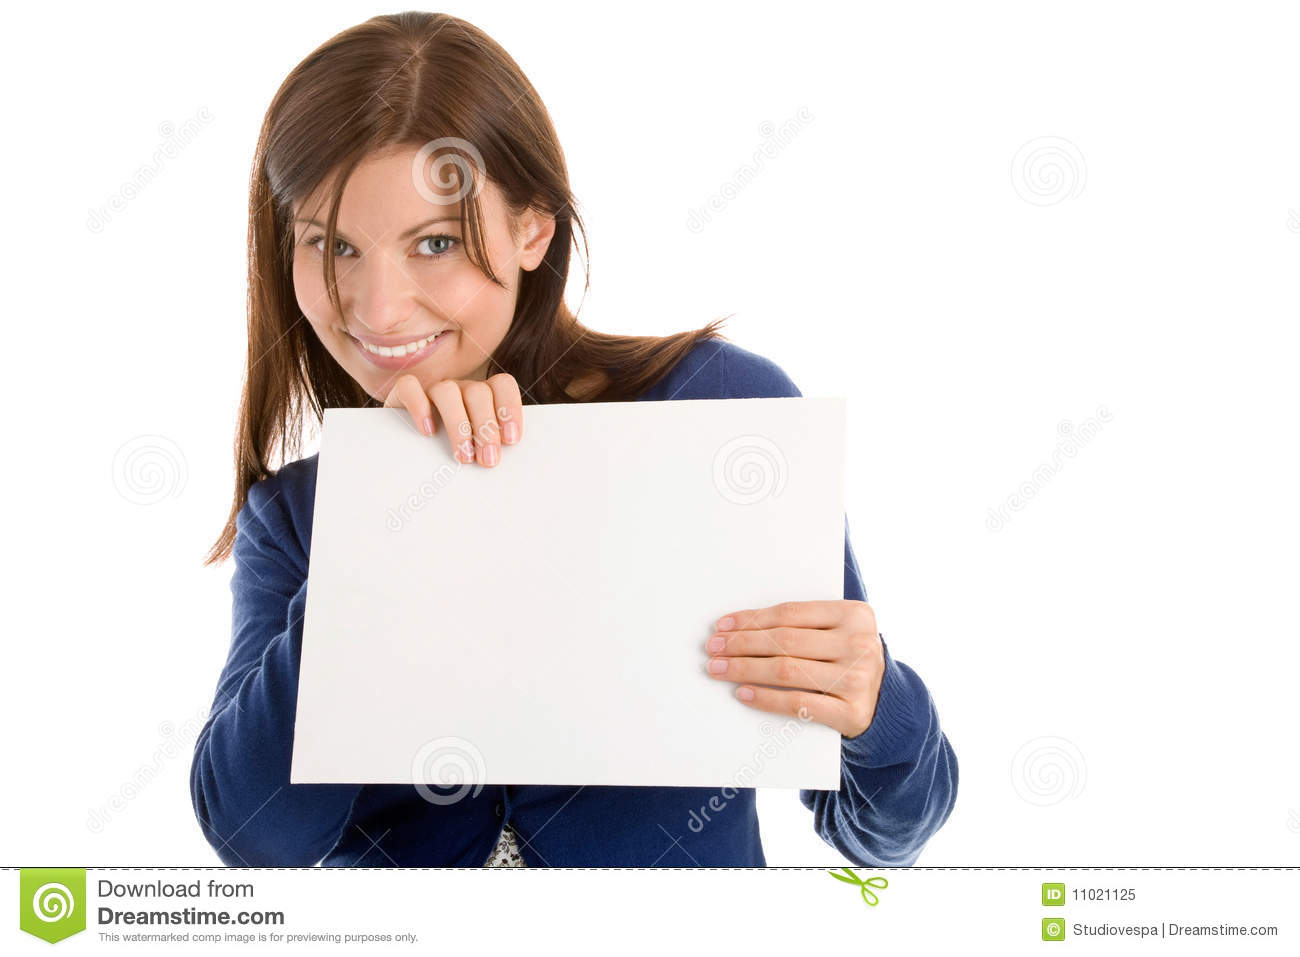 Woman holding blank note card